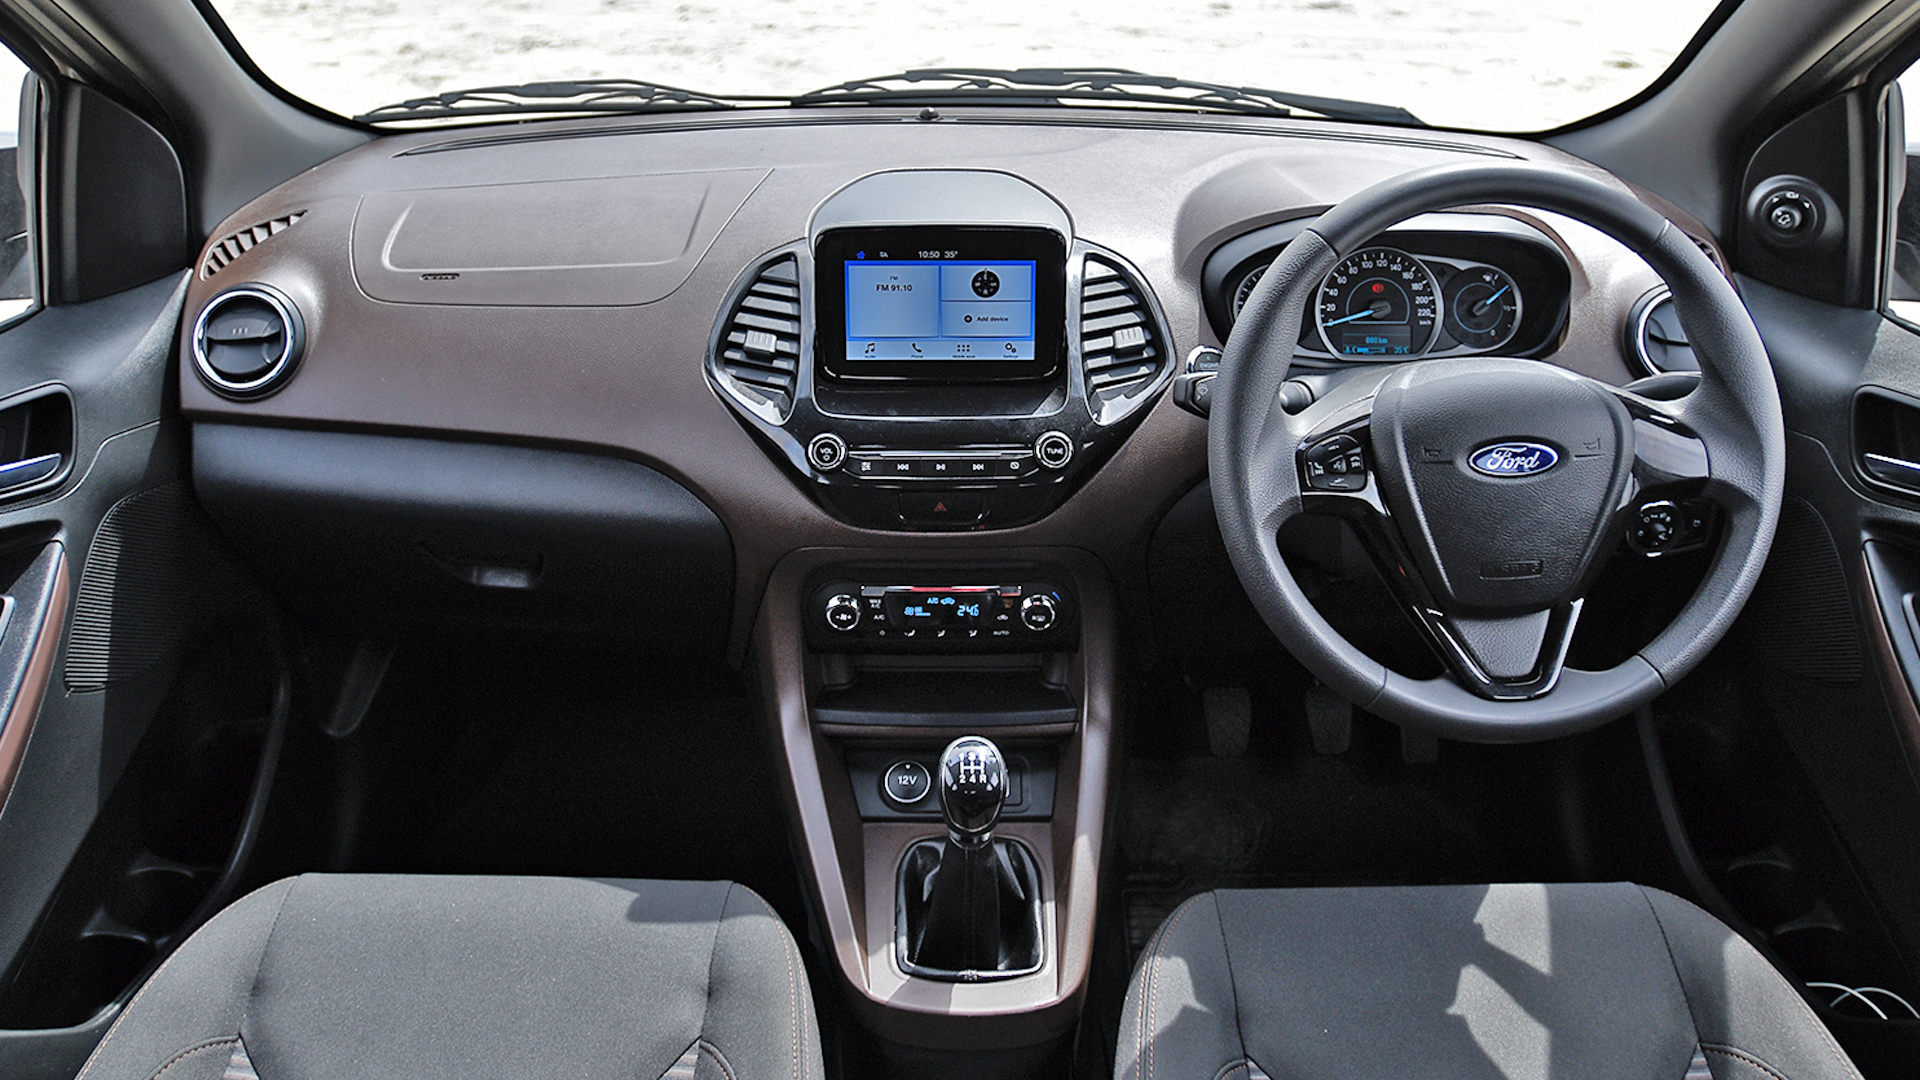 Ford Freestyle Interior Pictures